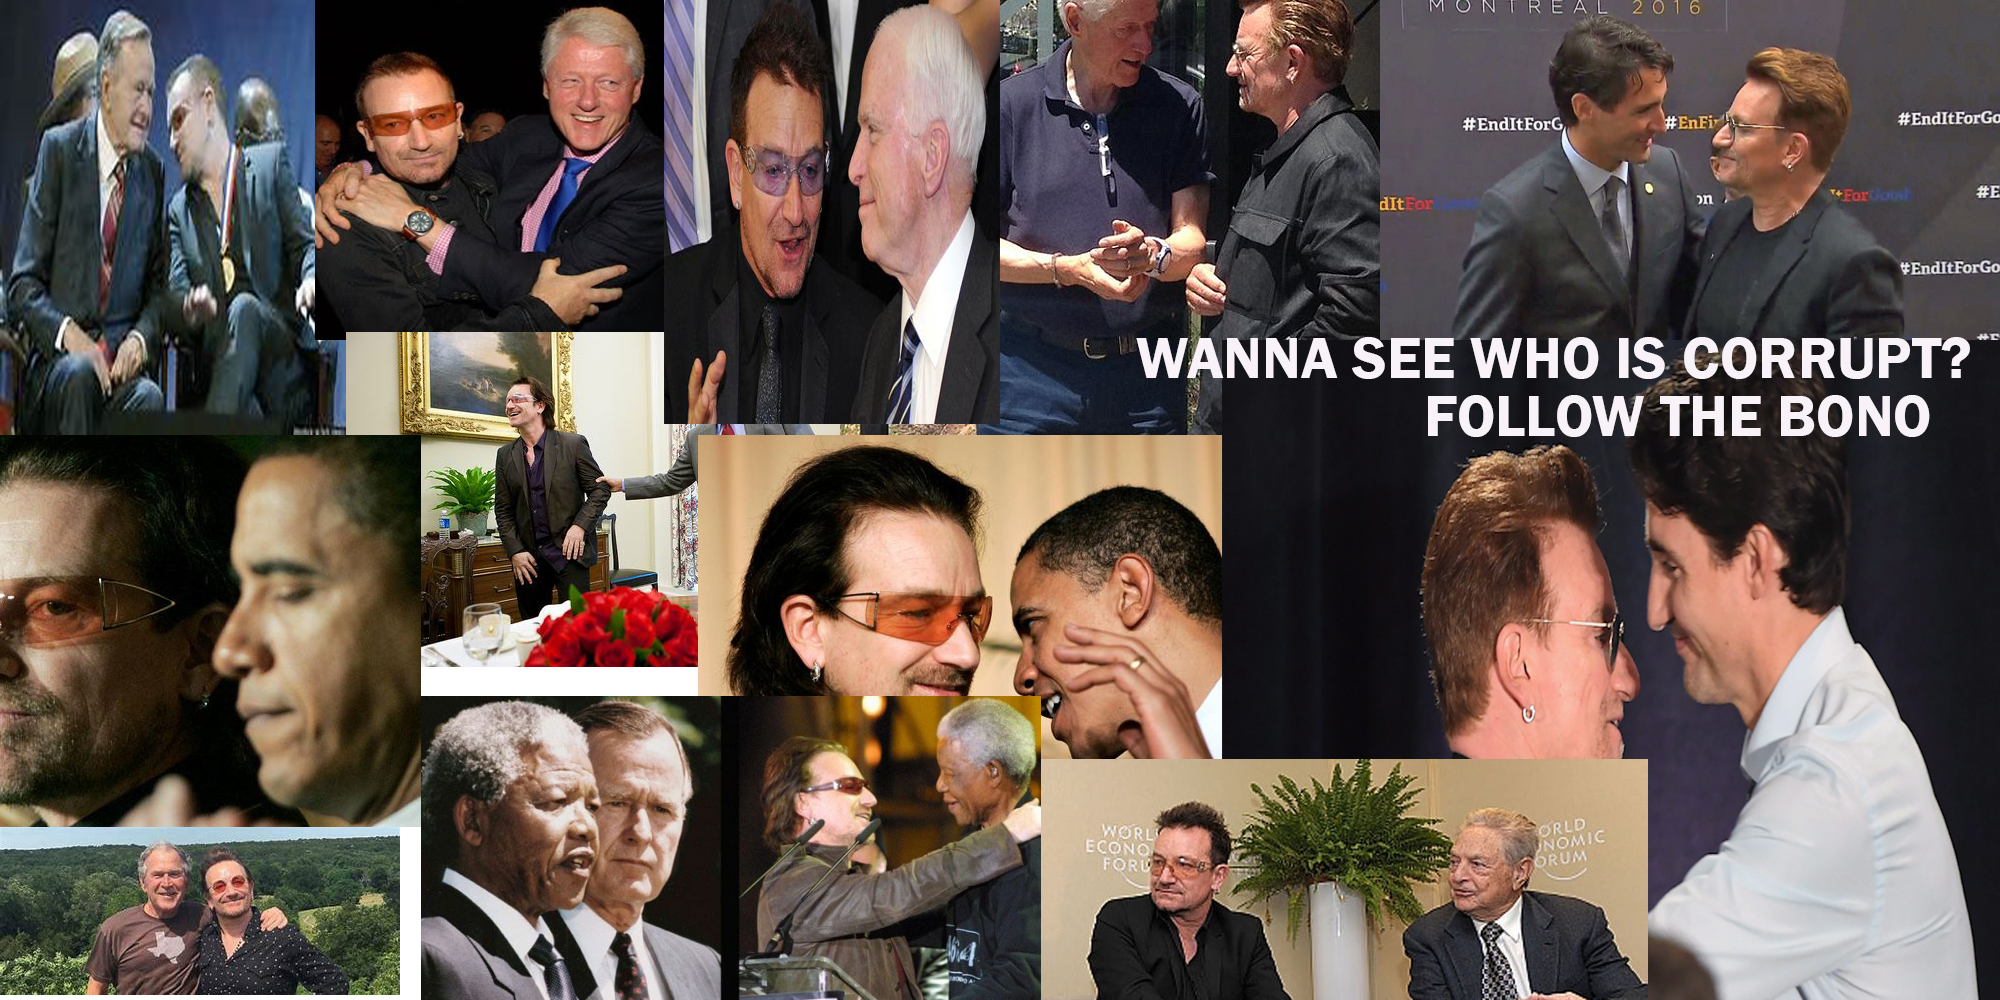 You wanna see who is corrupt? Follow the BONO